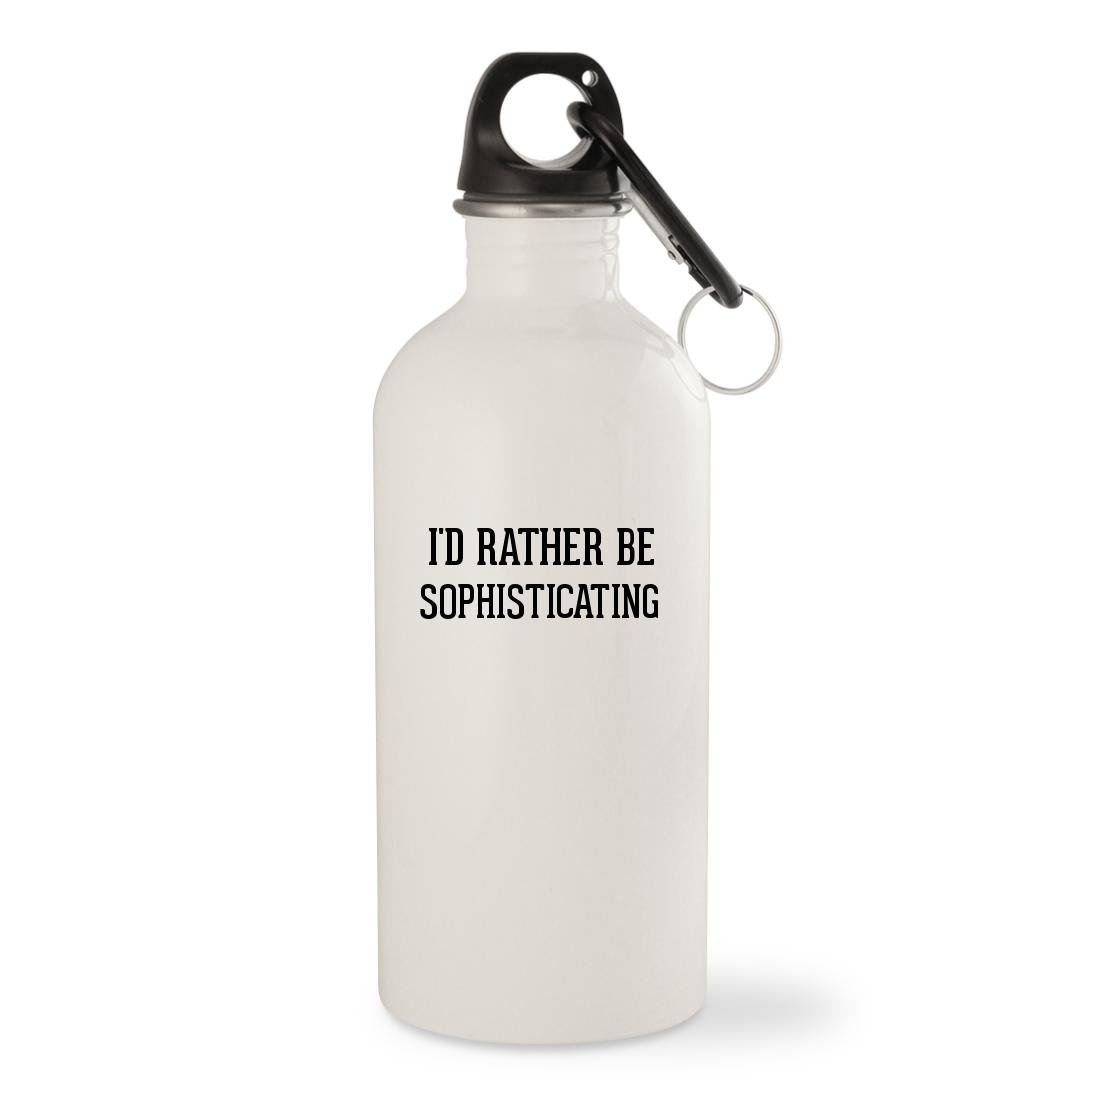 I'd Rather Be SOPHISTICATING - White 20oz Stainless Steel Water Bottle with Carabiner